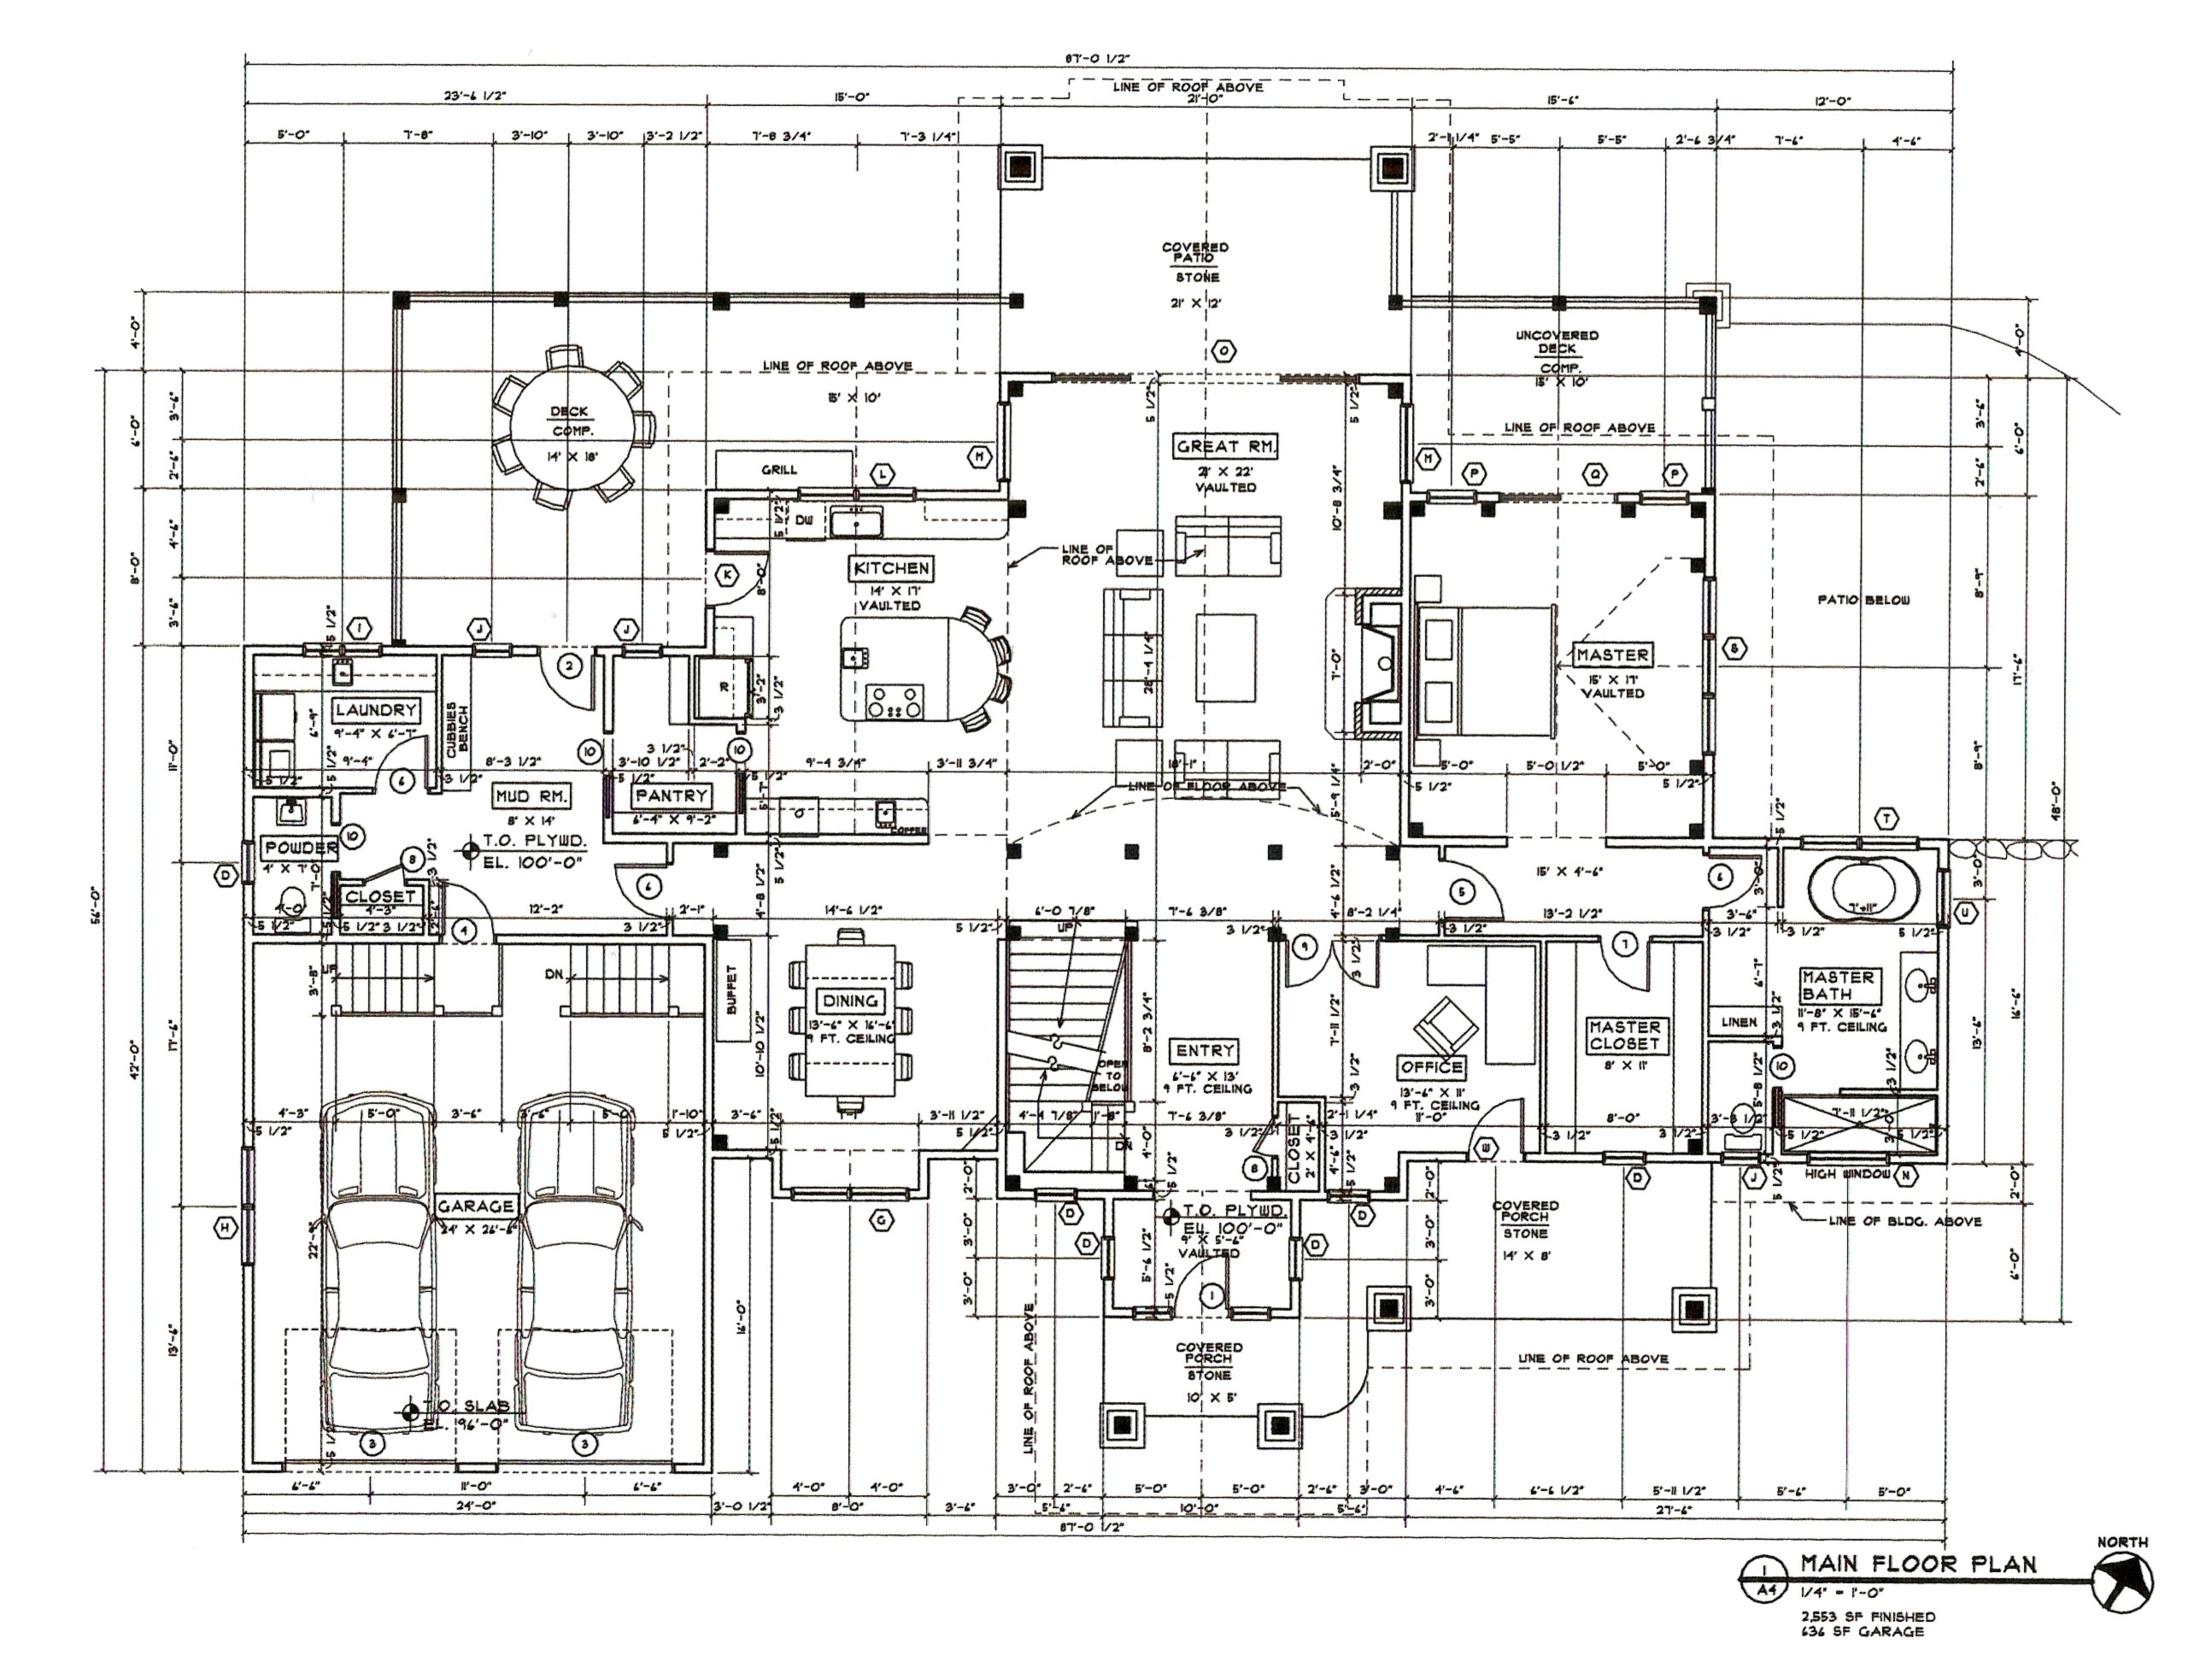 window dimensions architectural drawings dimensions printable breaking down architectural language descriptions and examples